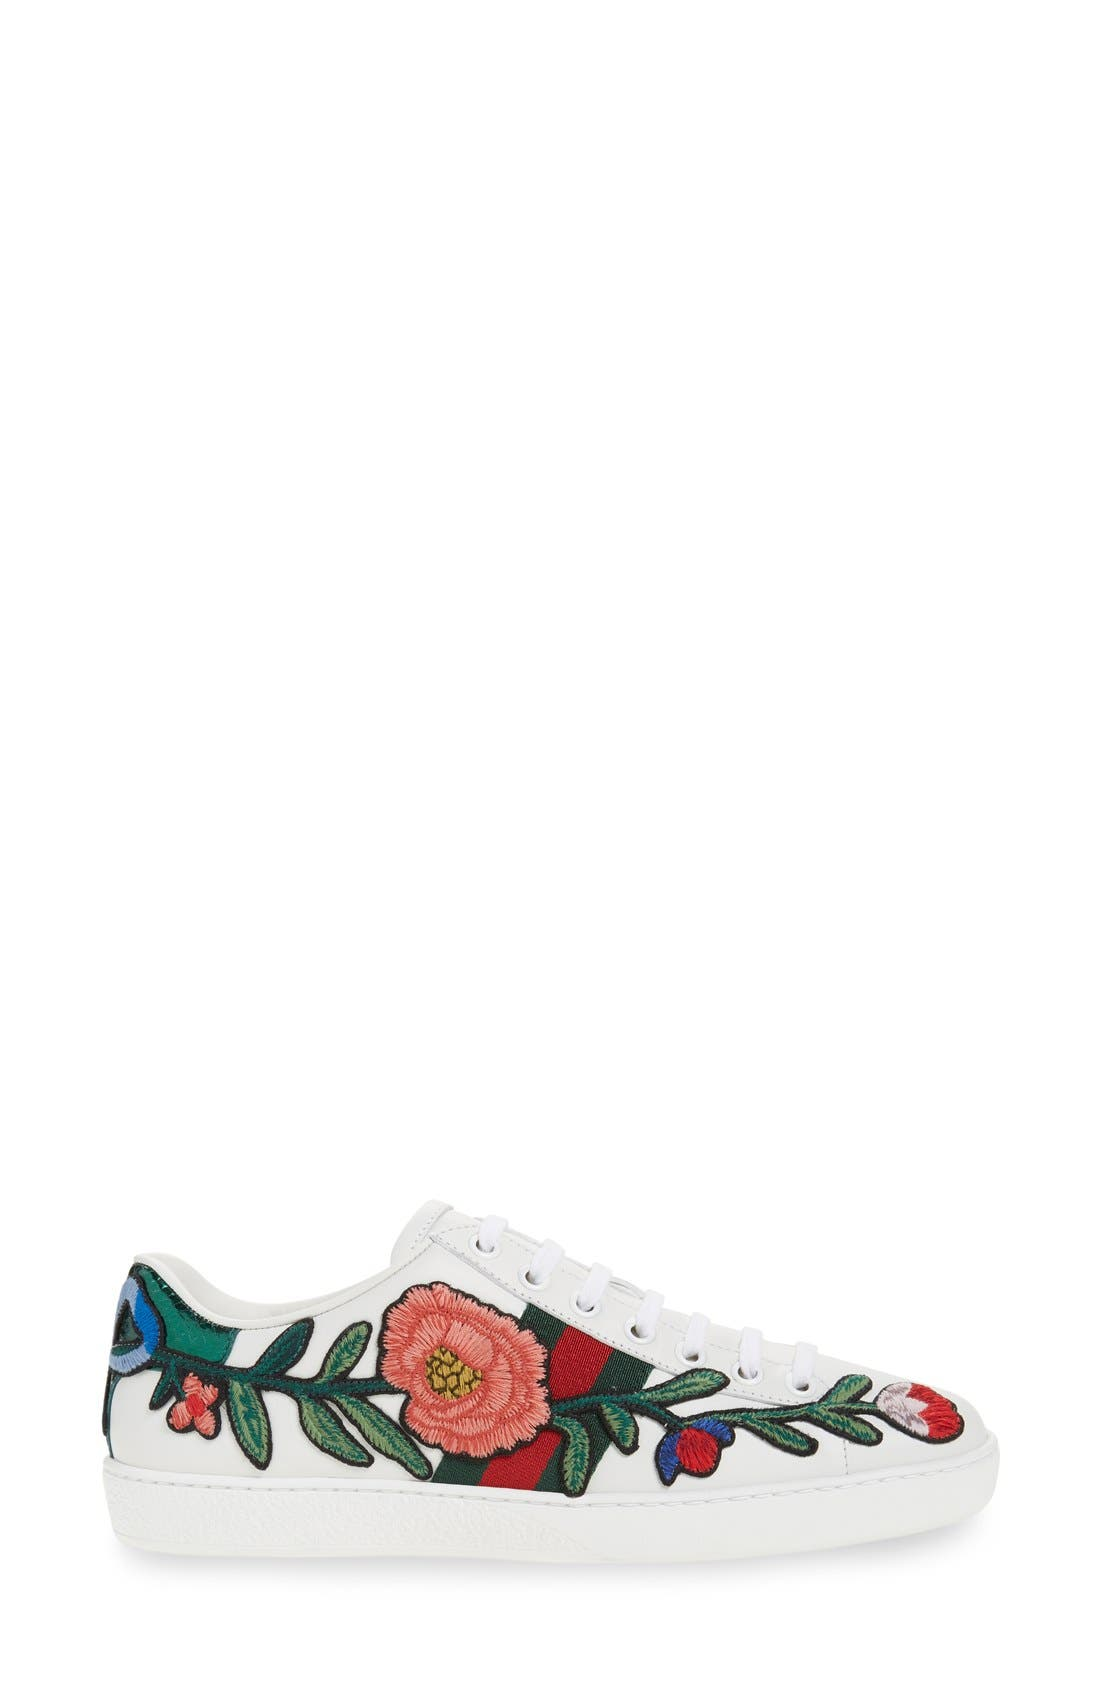 'New Ace' Low Top Sneaker,                             Alternate thumbnail 20, color,